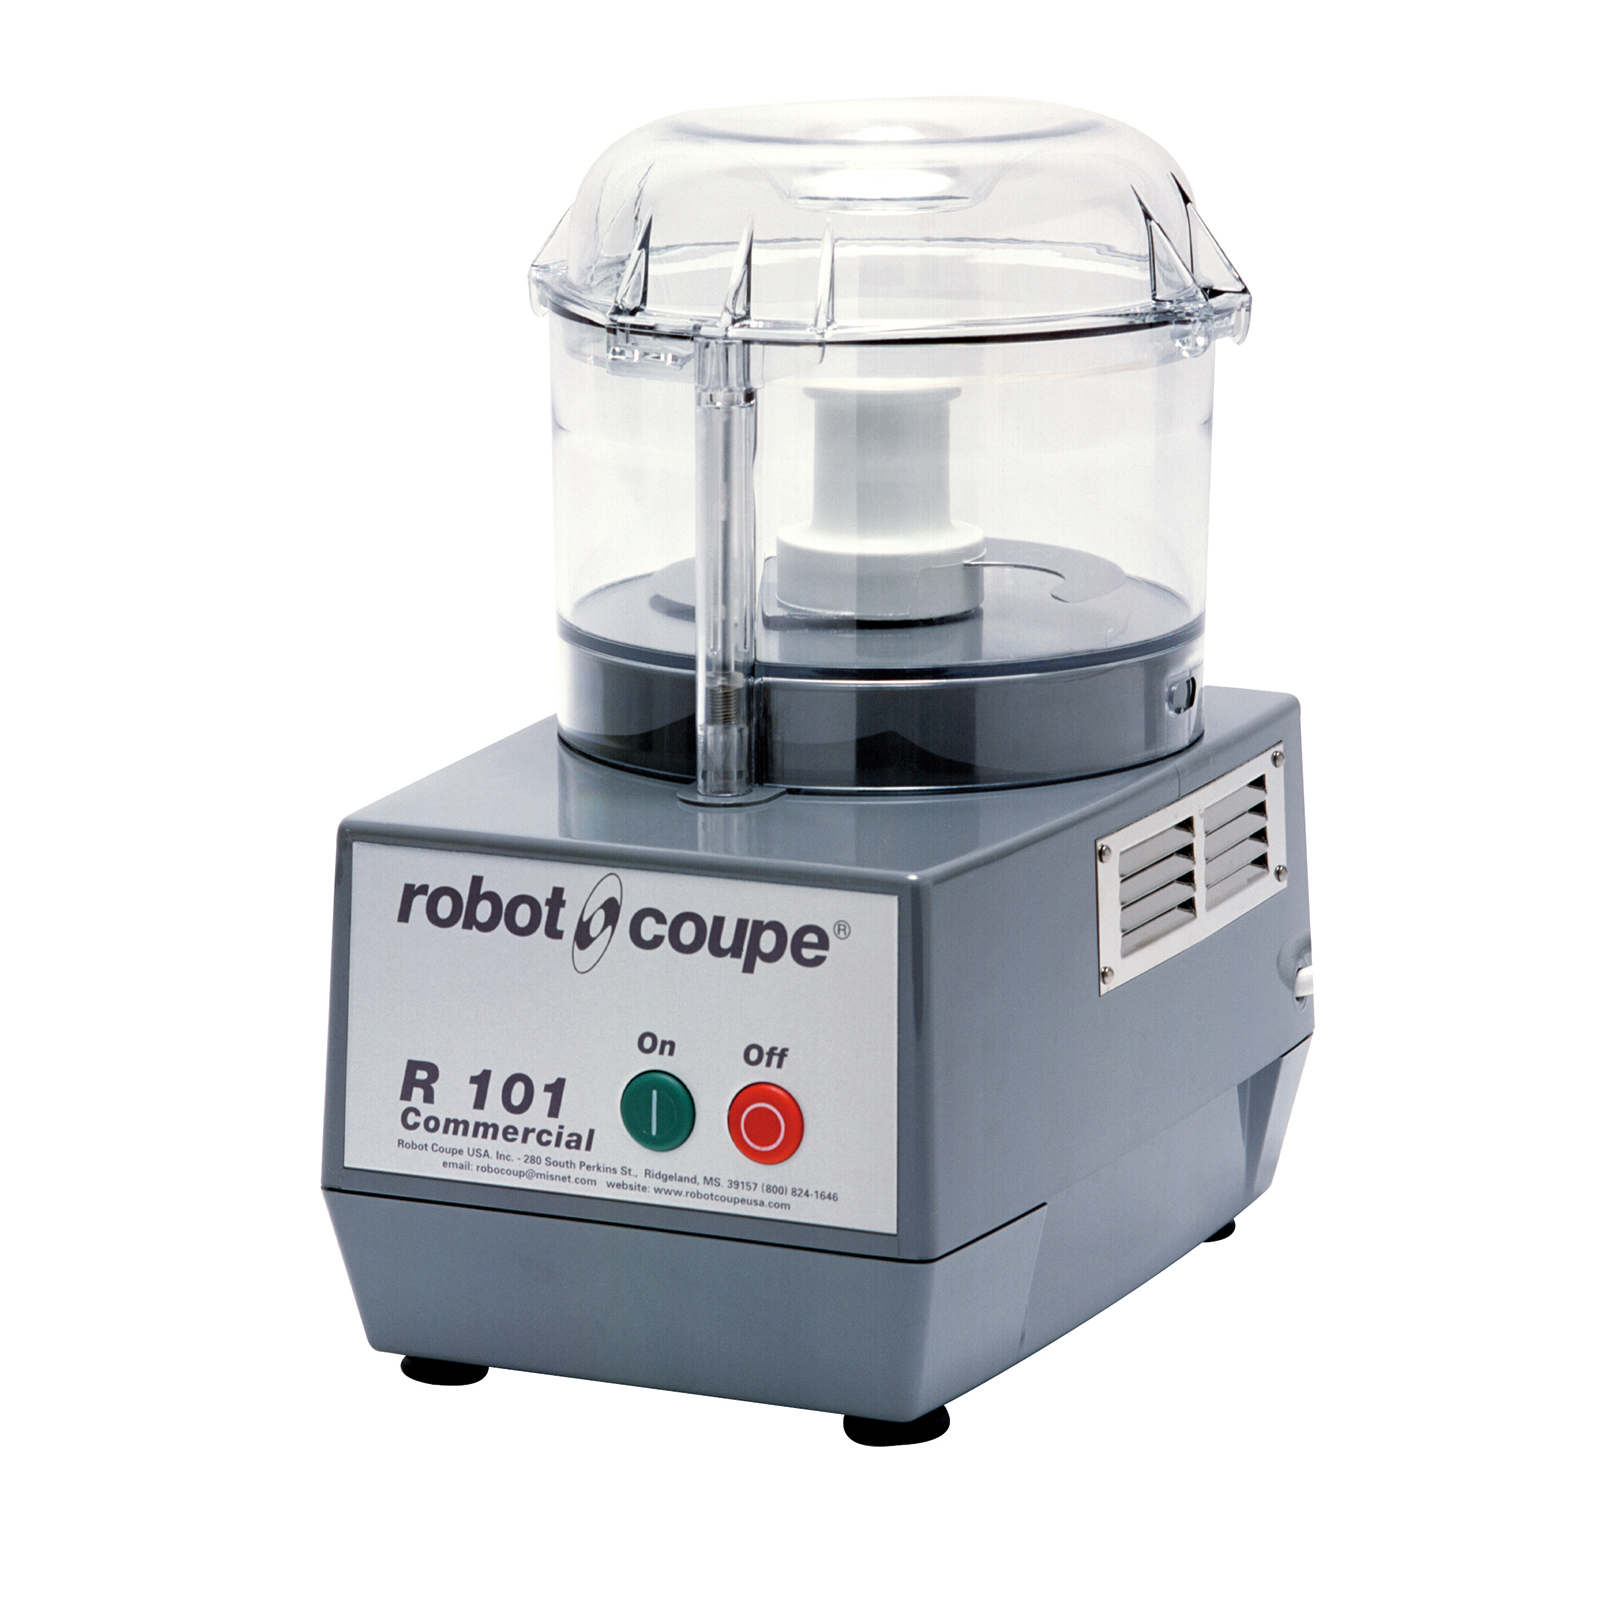 Robot Coupe R101 B CLR food processor, benchtop / countertop